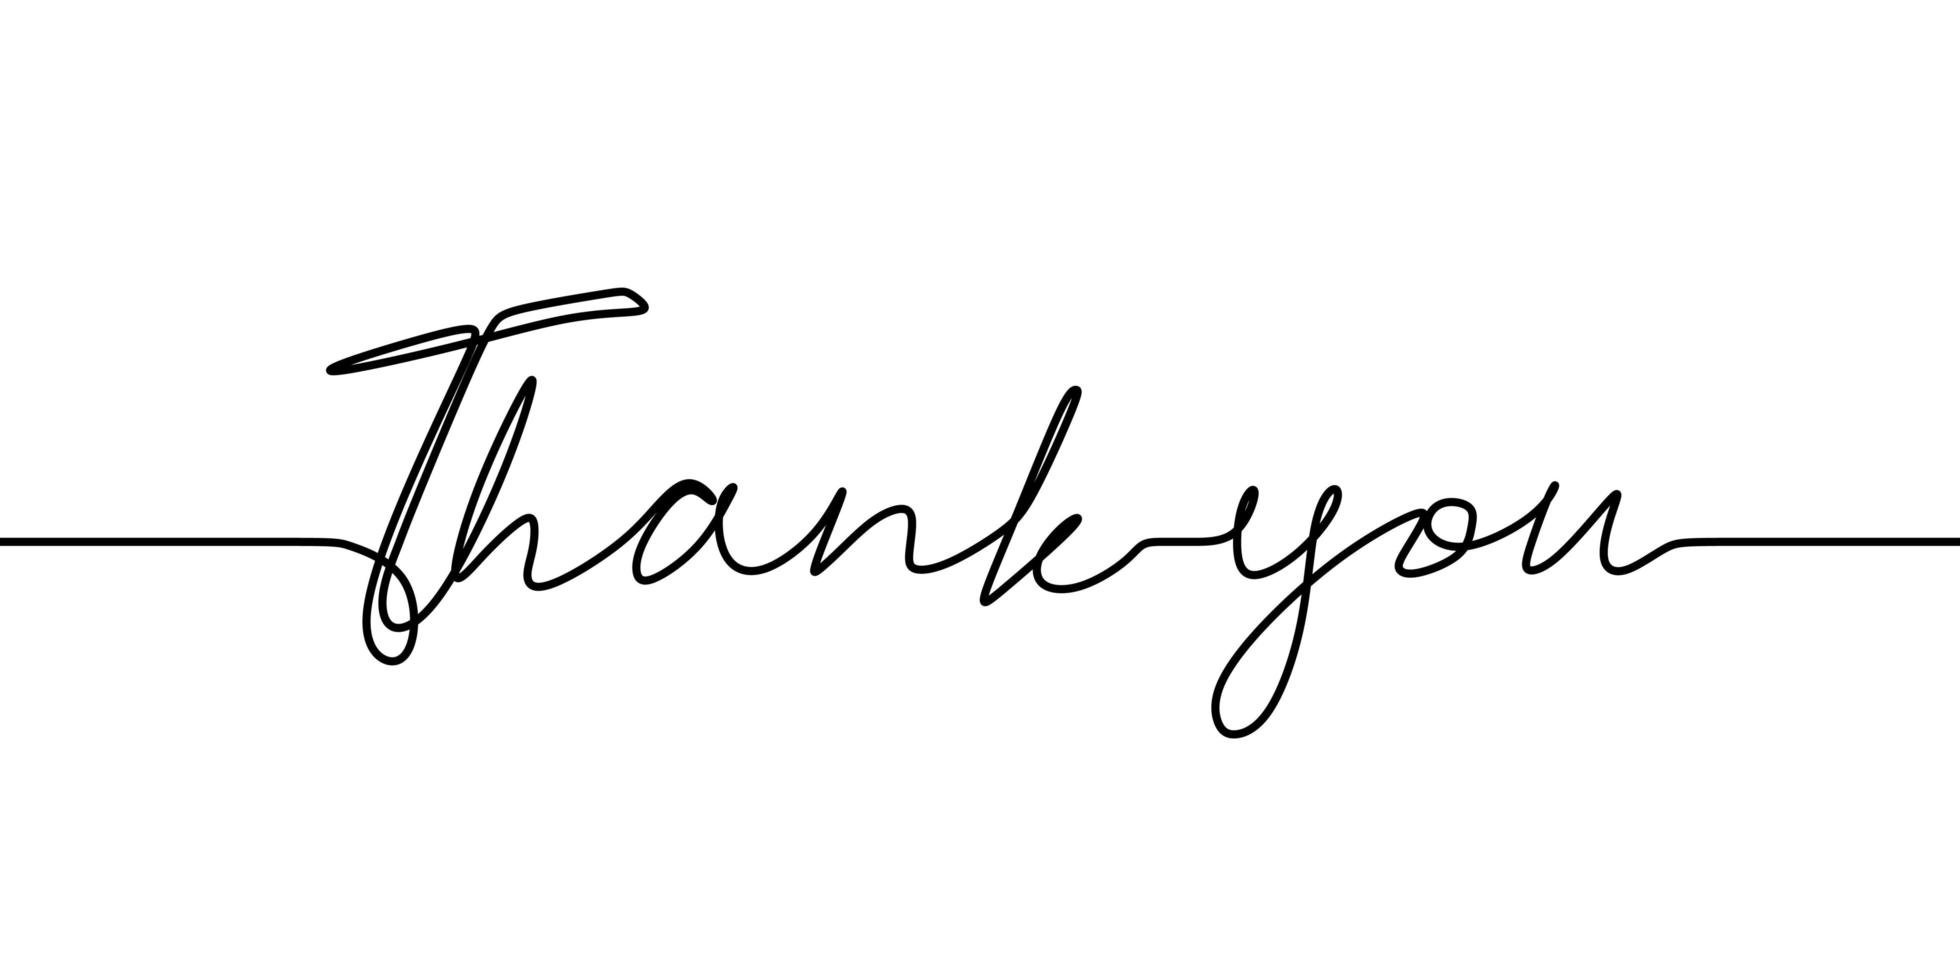 Continuous one line drawing of thank you text. vector